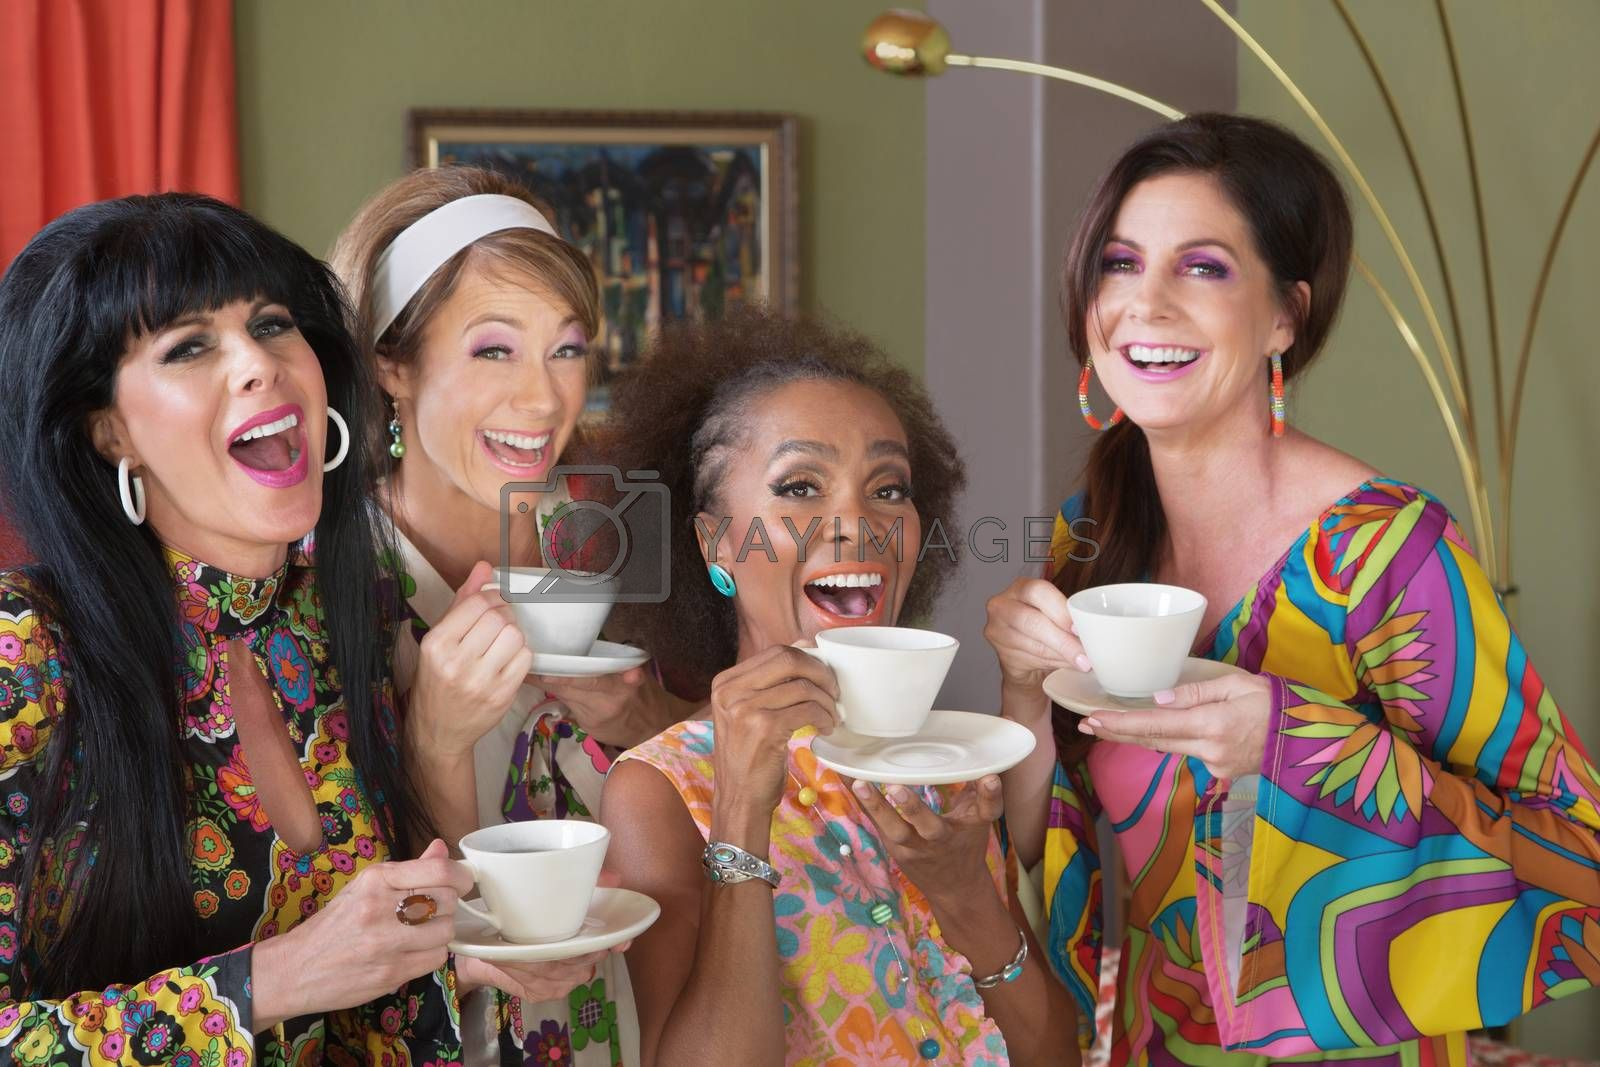 Royalty free image of Four Happy Women Drinking Tea by Creatista